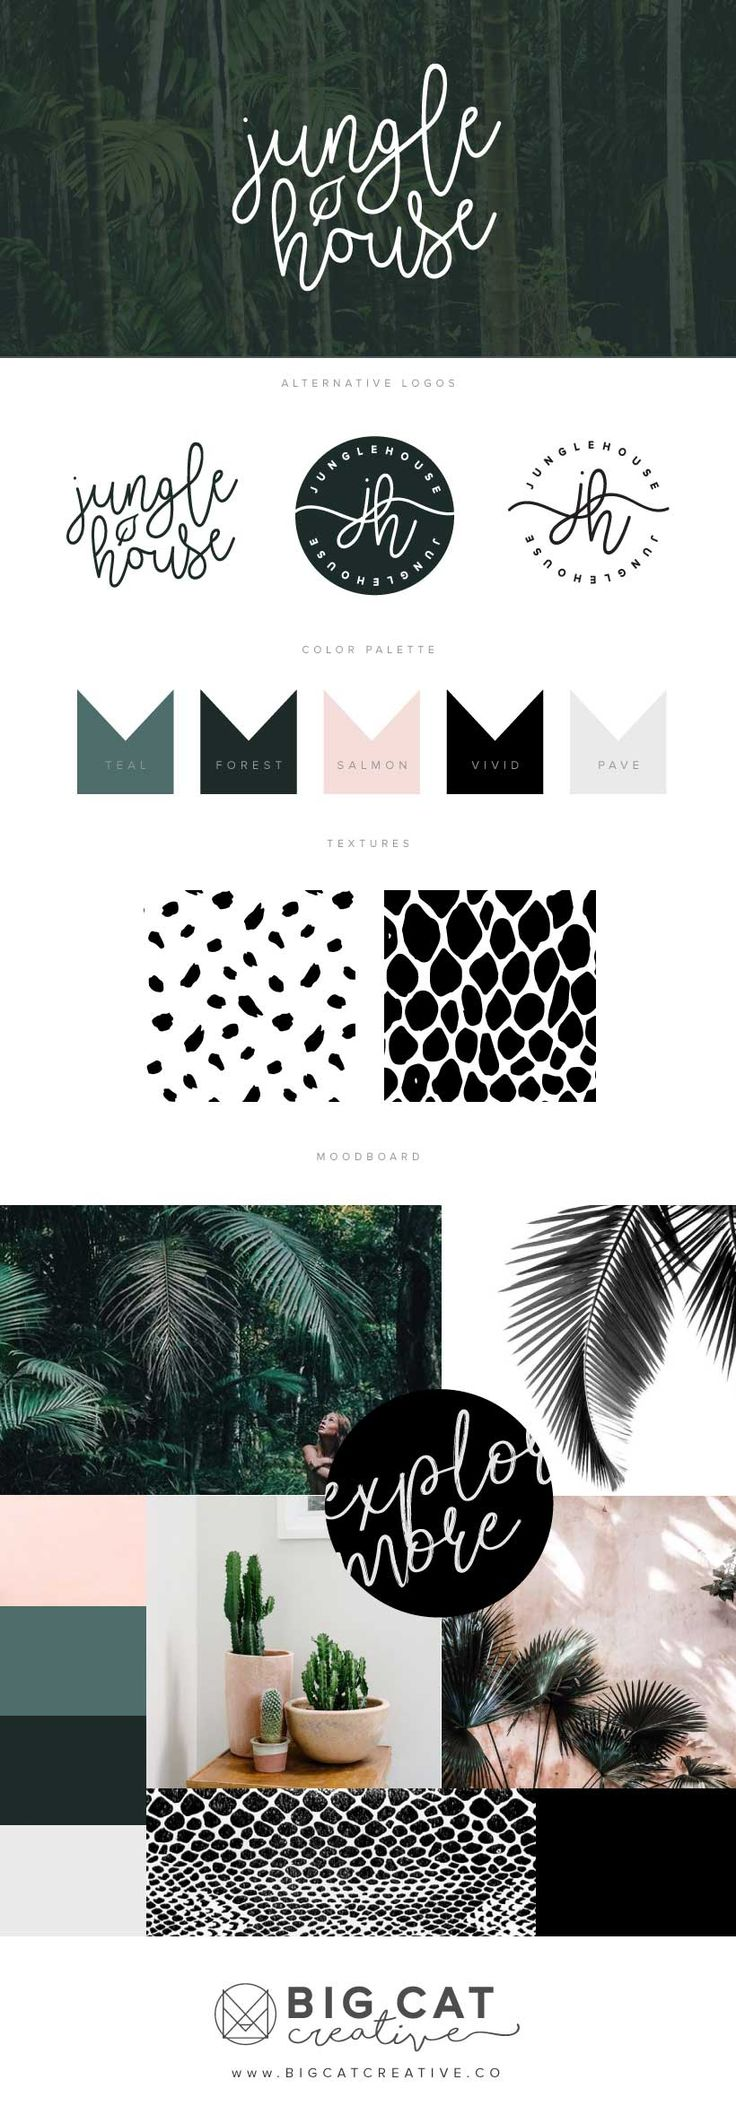 Jungle House Branding Style Board by Big Cat Creative | Get your own at www.bigcatcreative.co